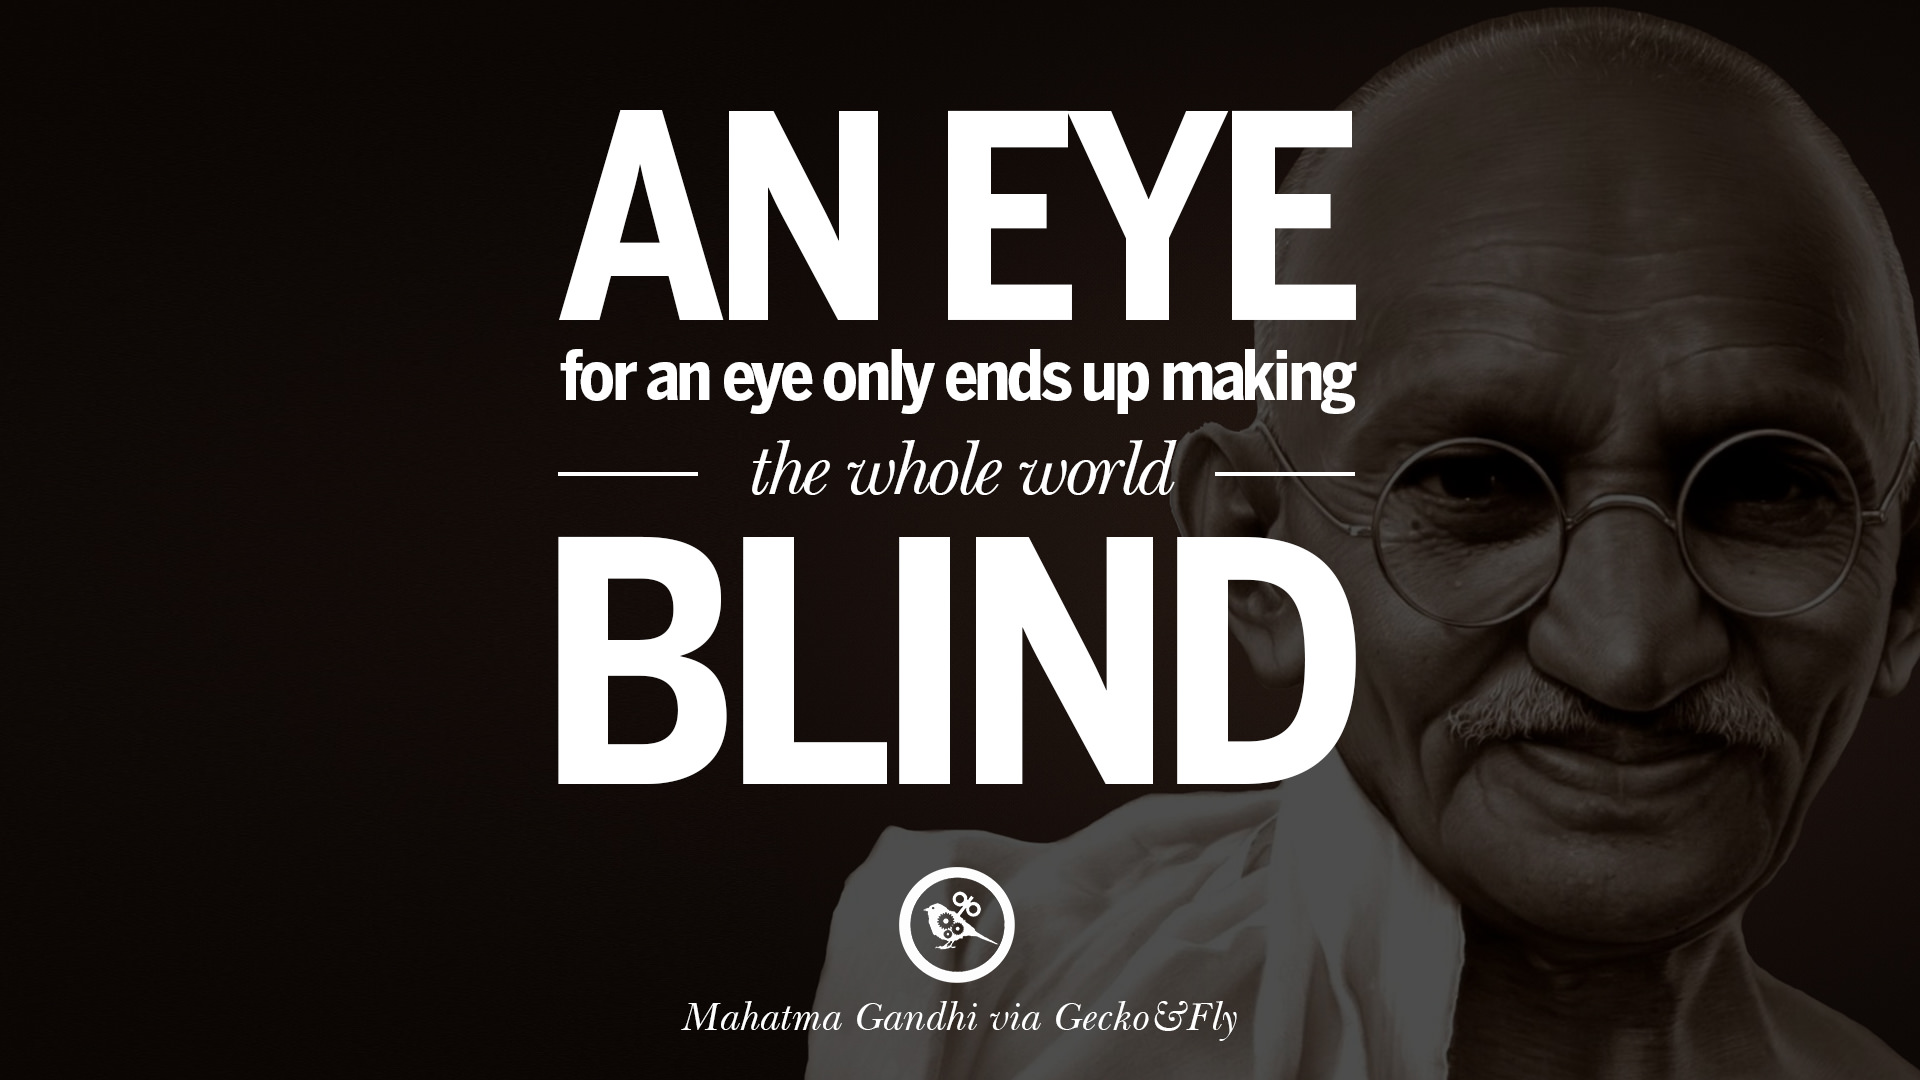 mahatma gandhi quotes and frases on peace protest and civil